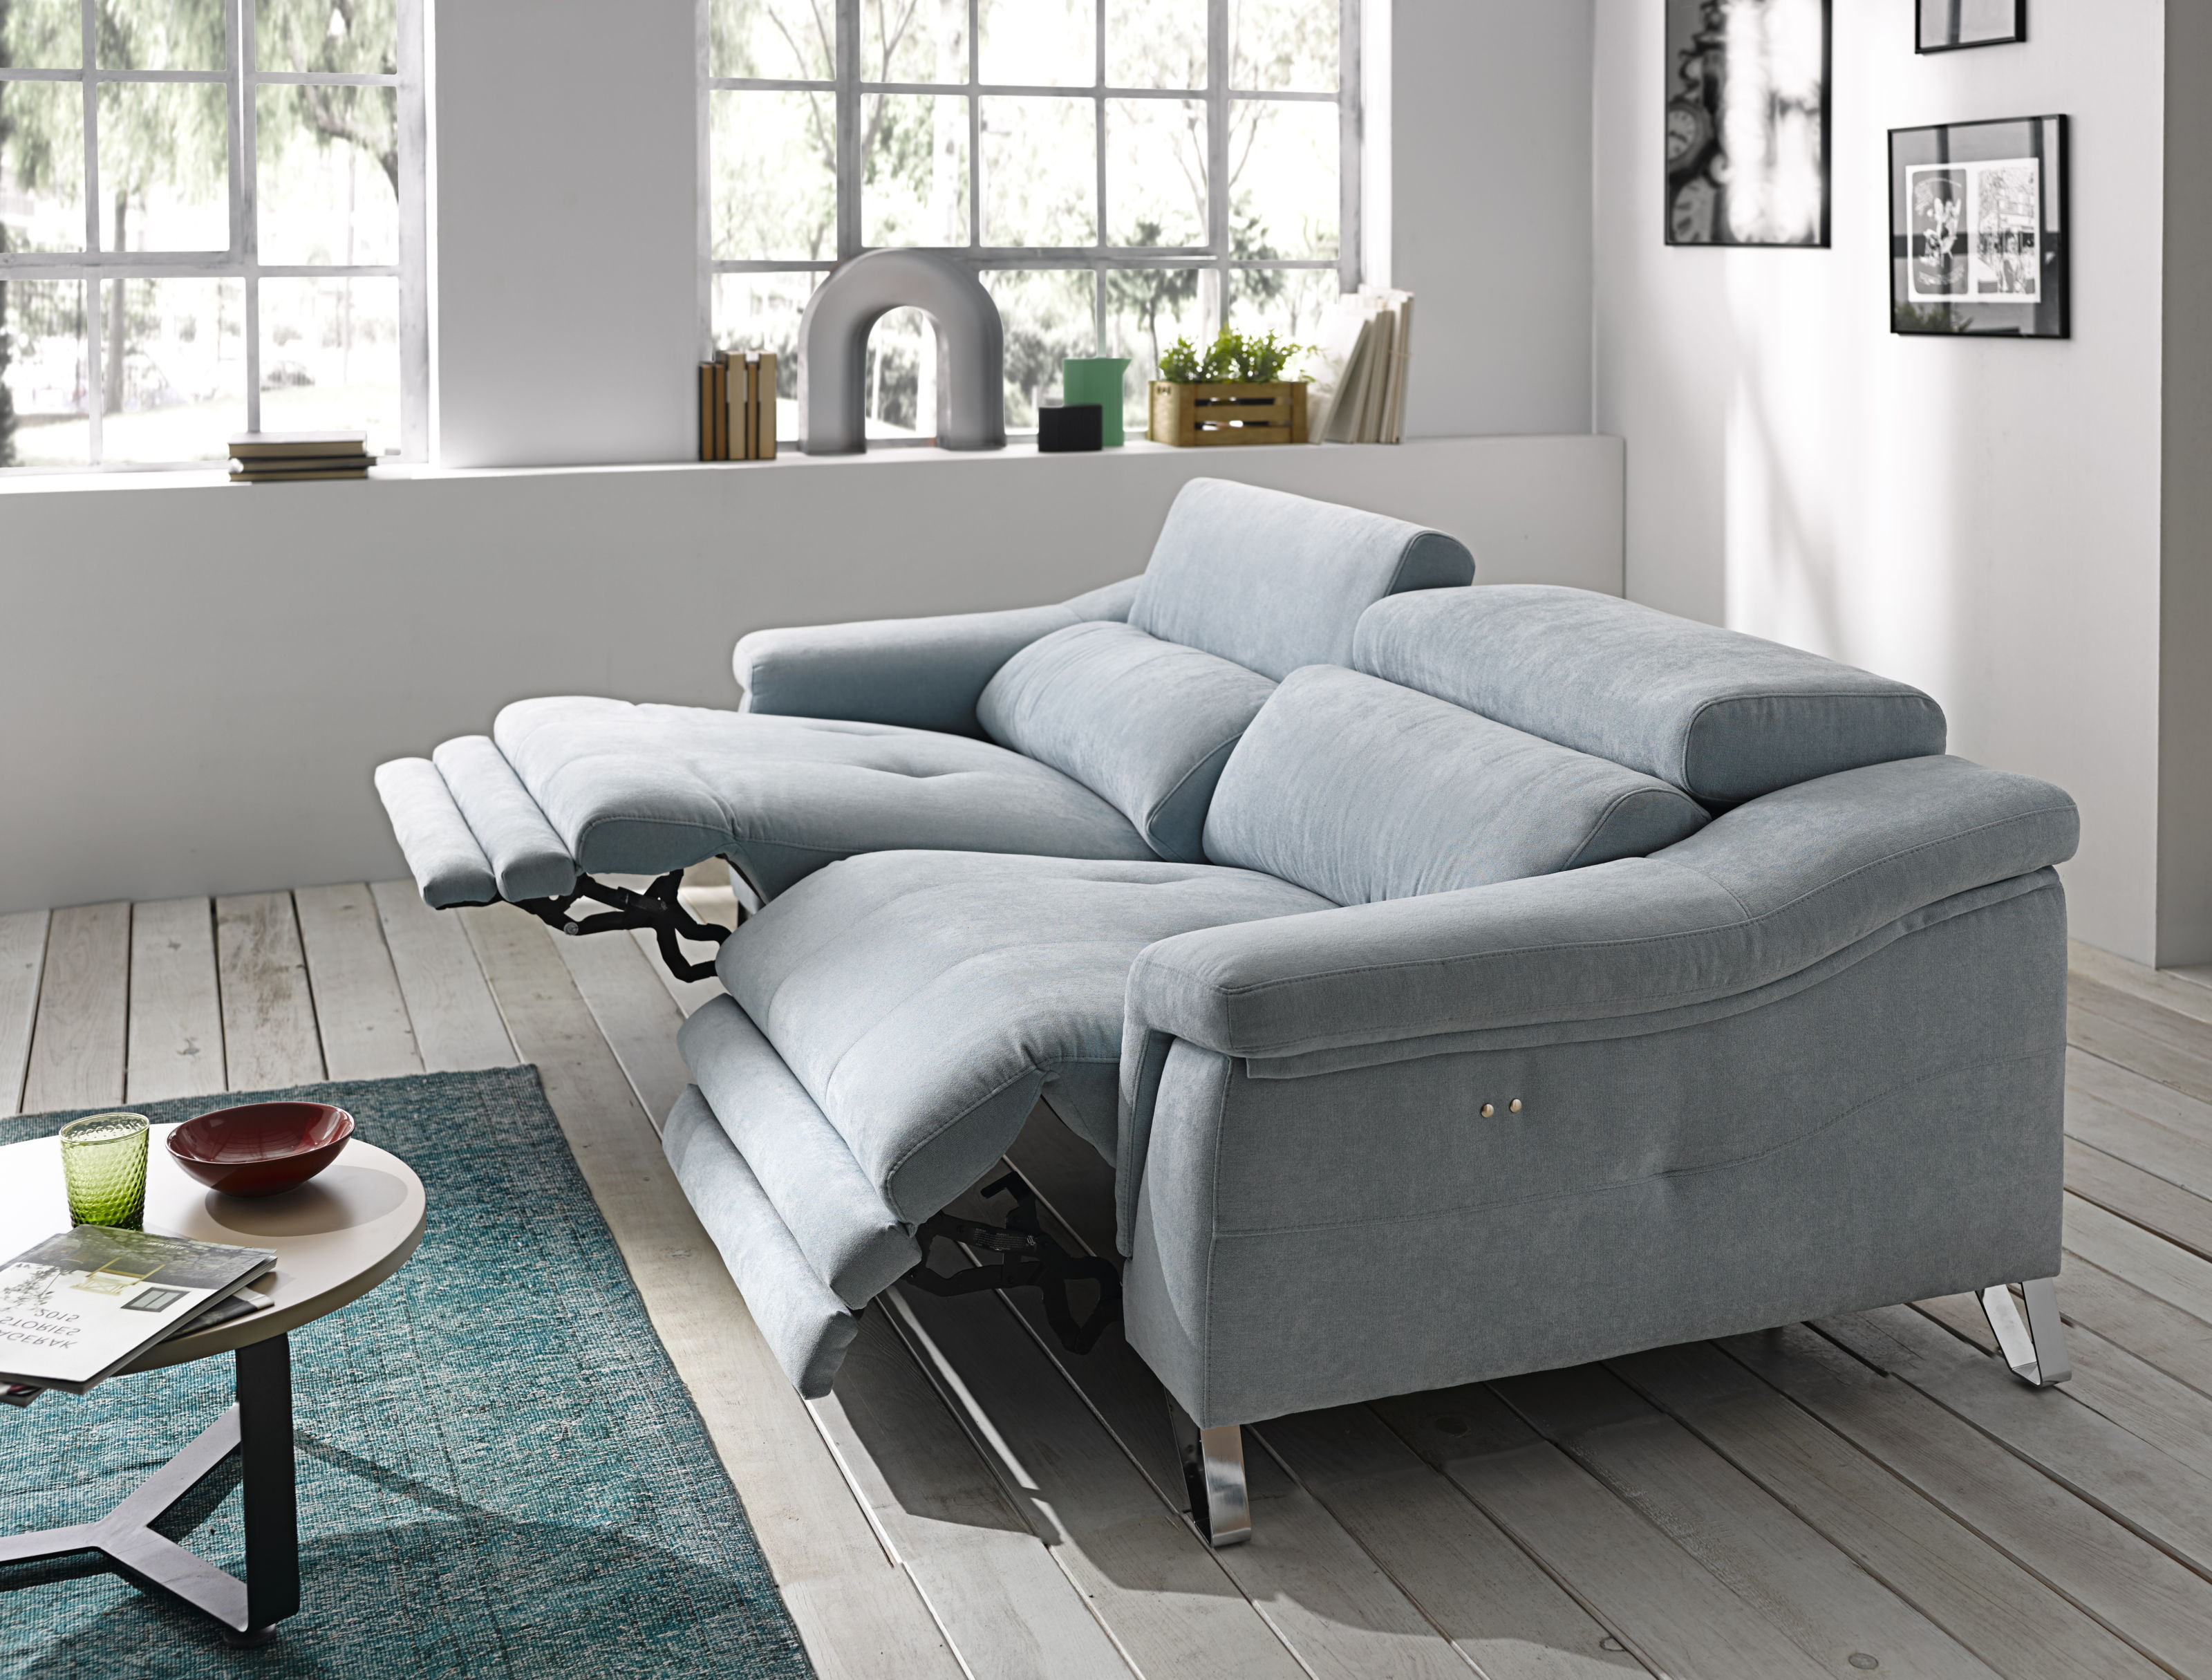 Mirella Italian Fabric Reclining 3 Seater Sofa Memory Foam Seating